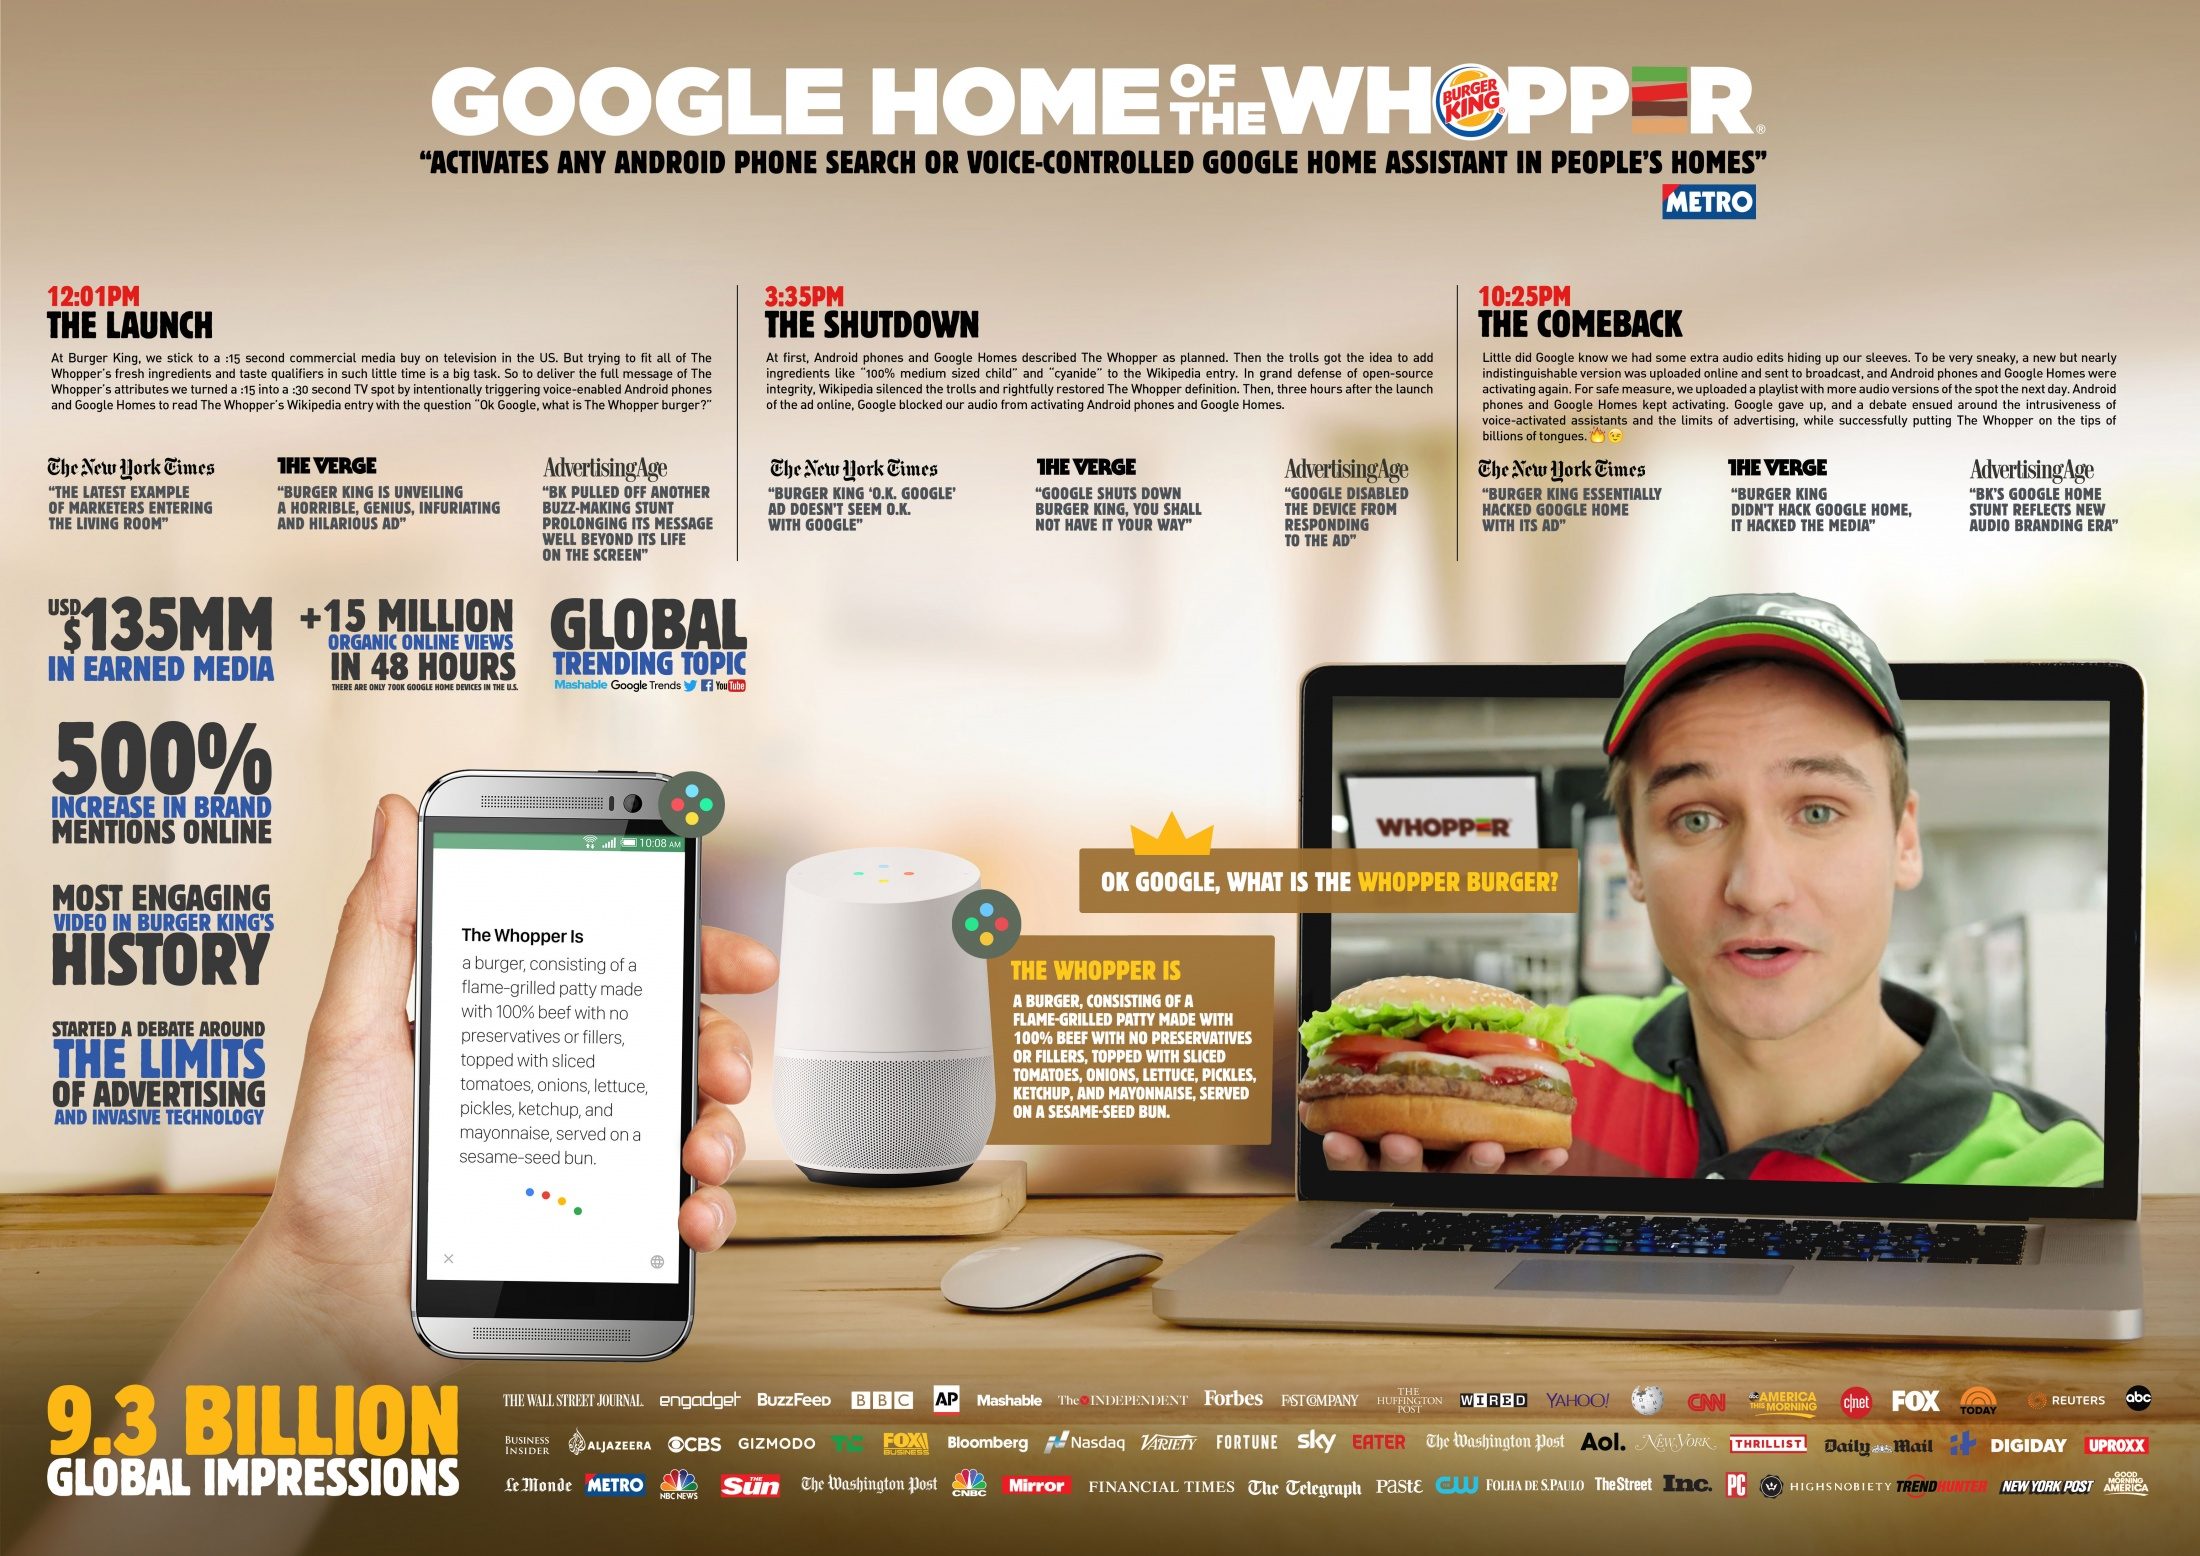 Thumbnail for Google Home of The Whopper